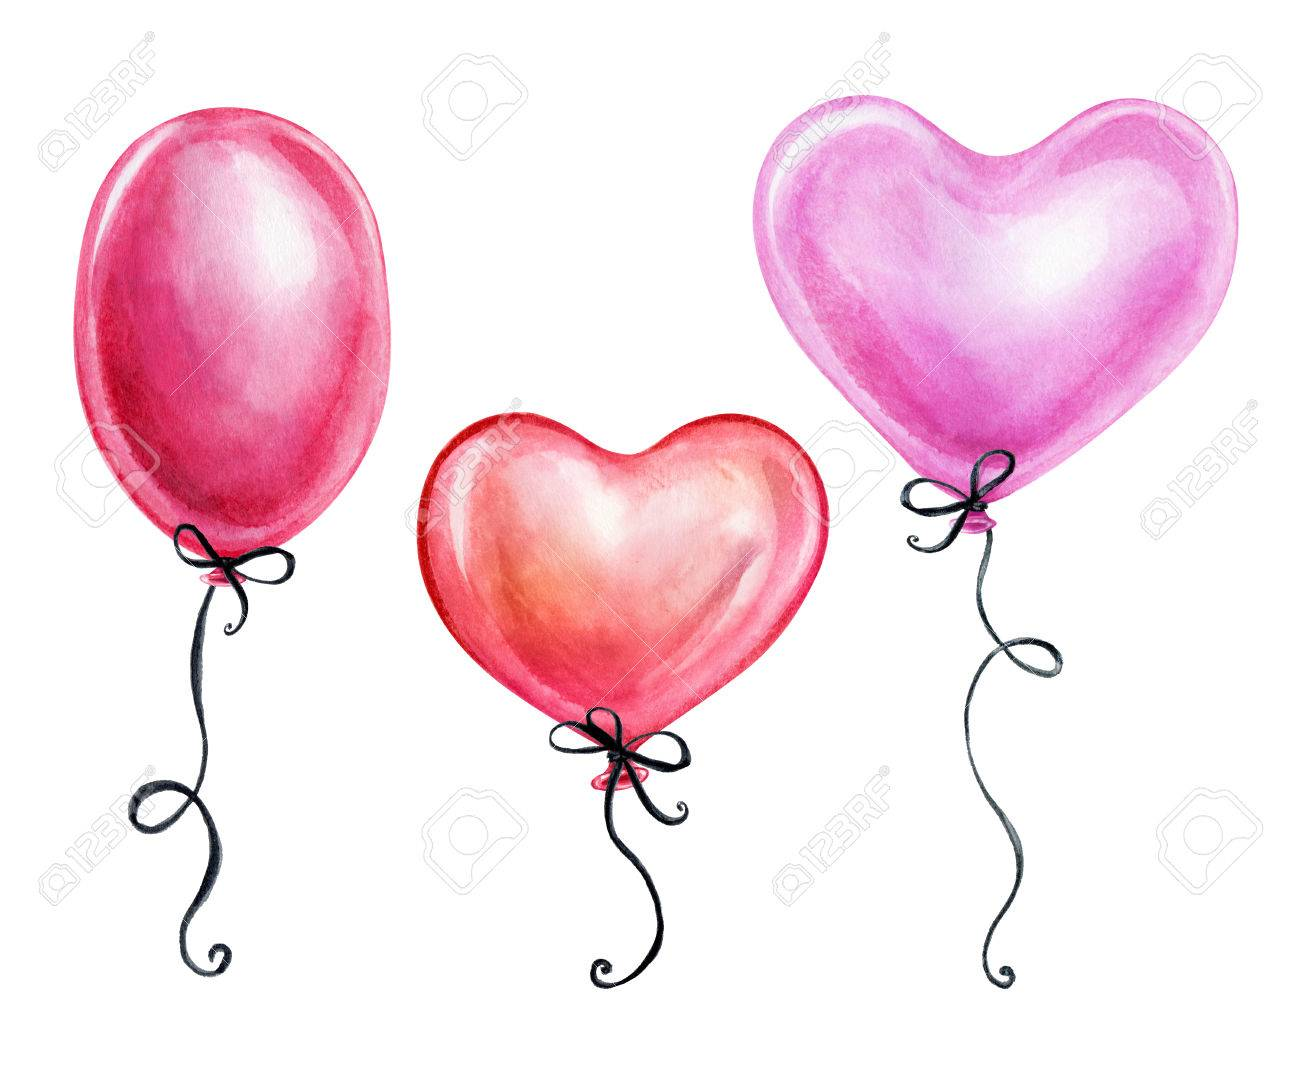 Watercolor Illustration Cute Pink Air Balloons Valentine S Stock